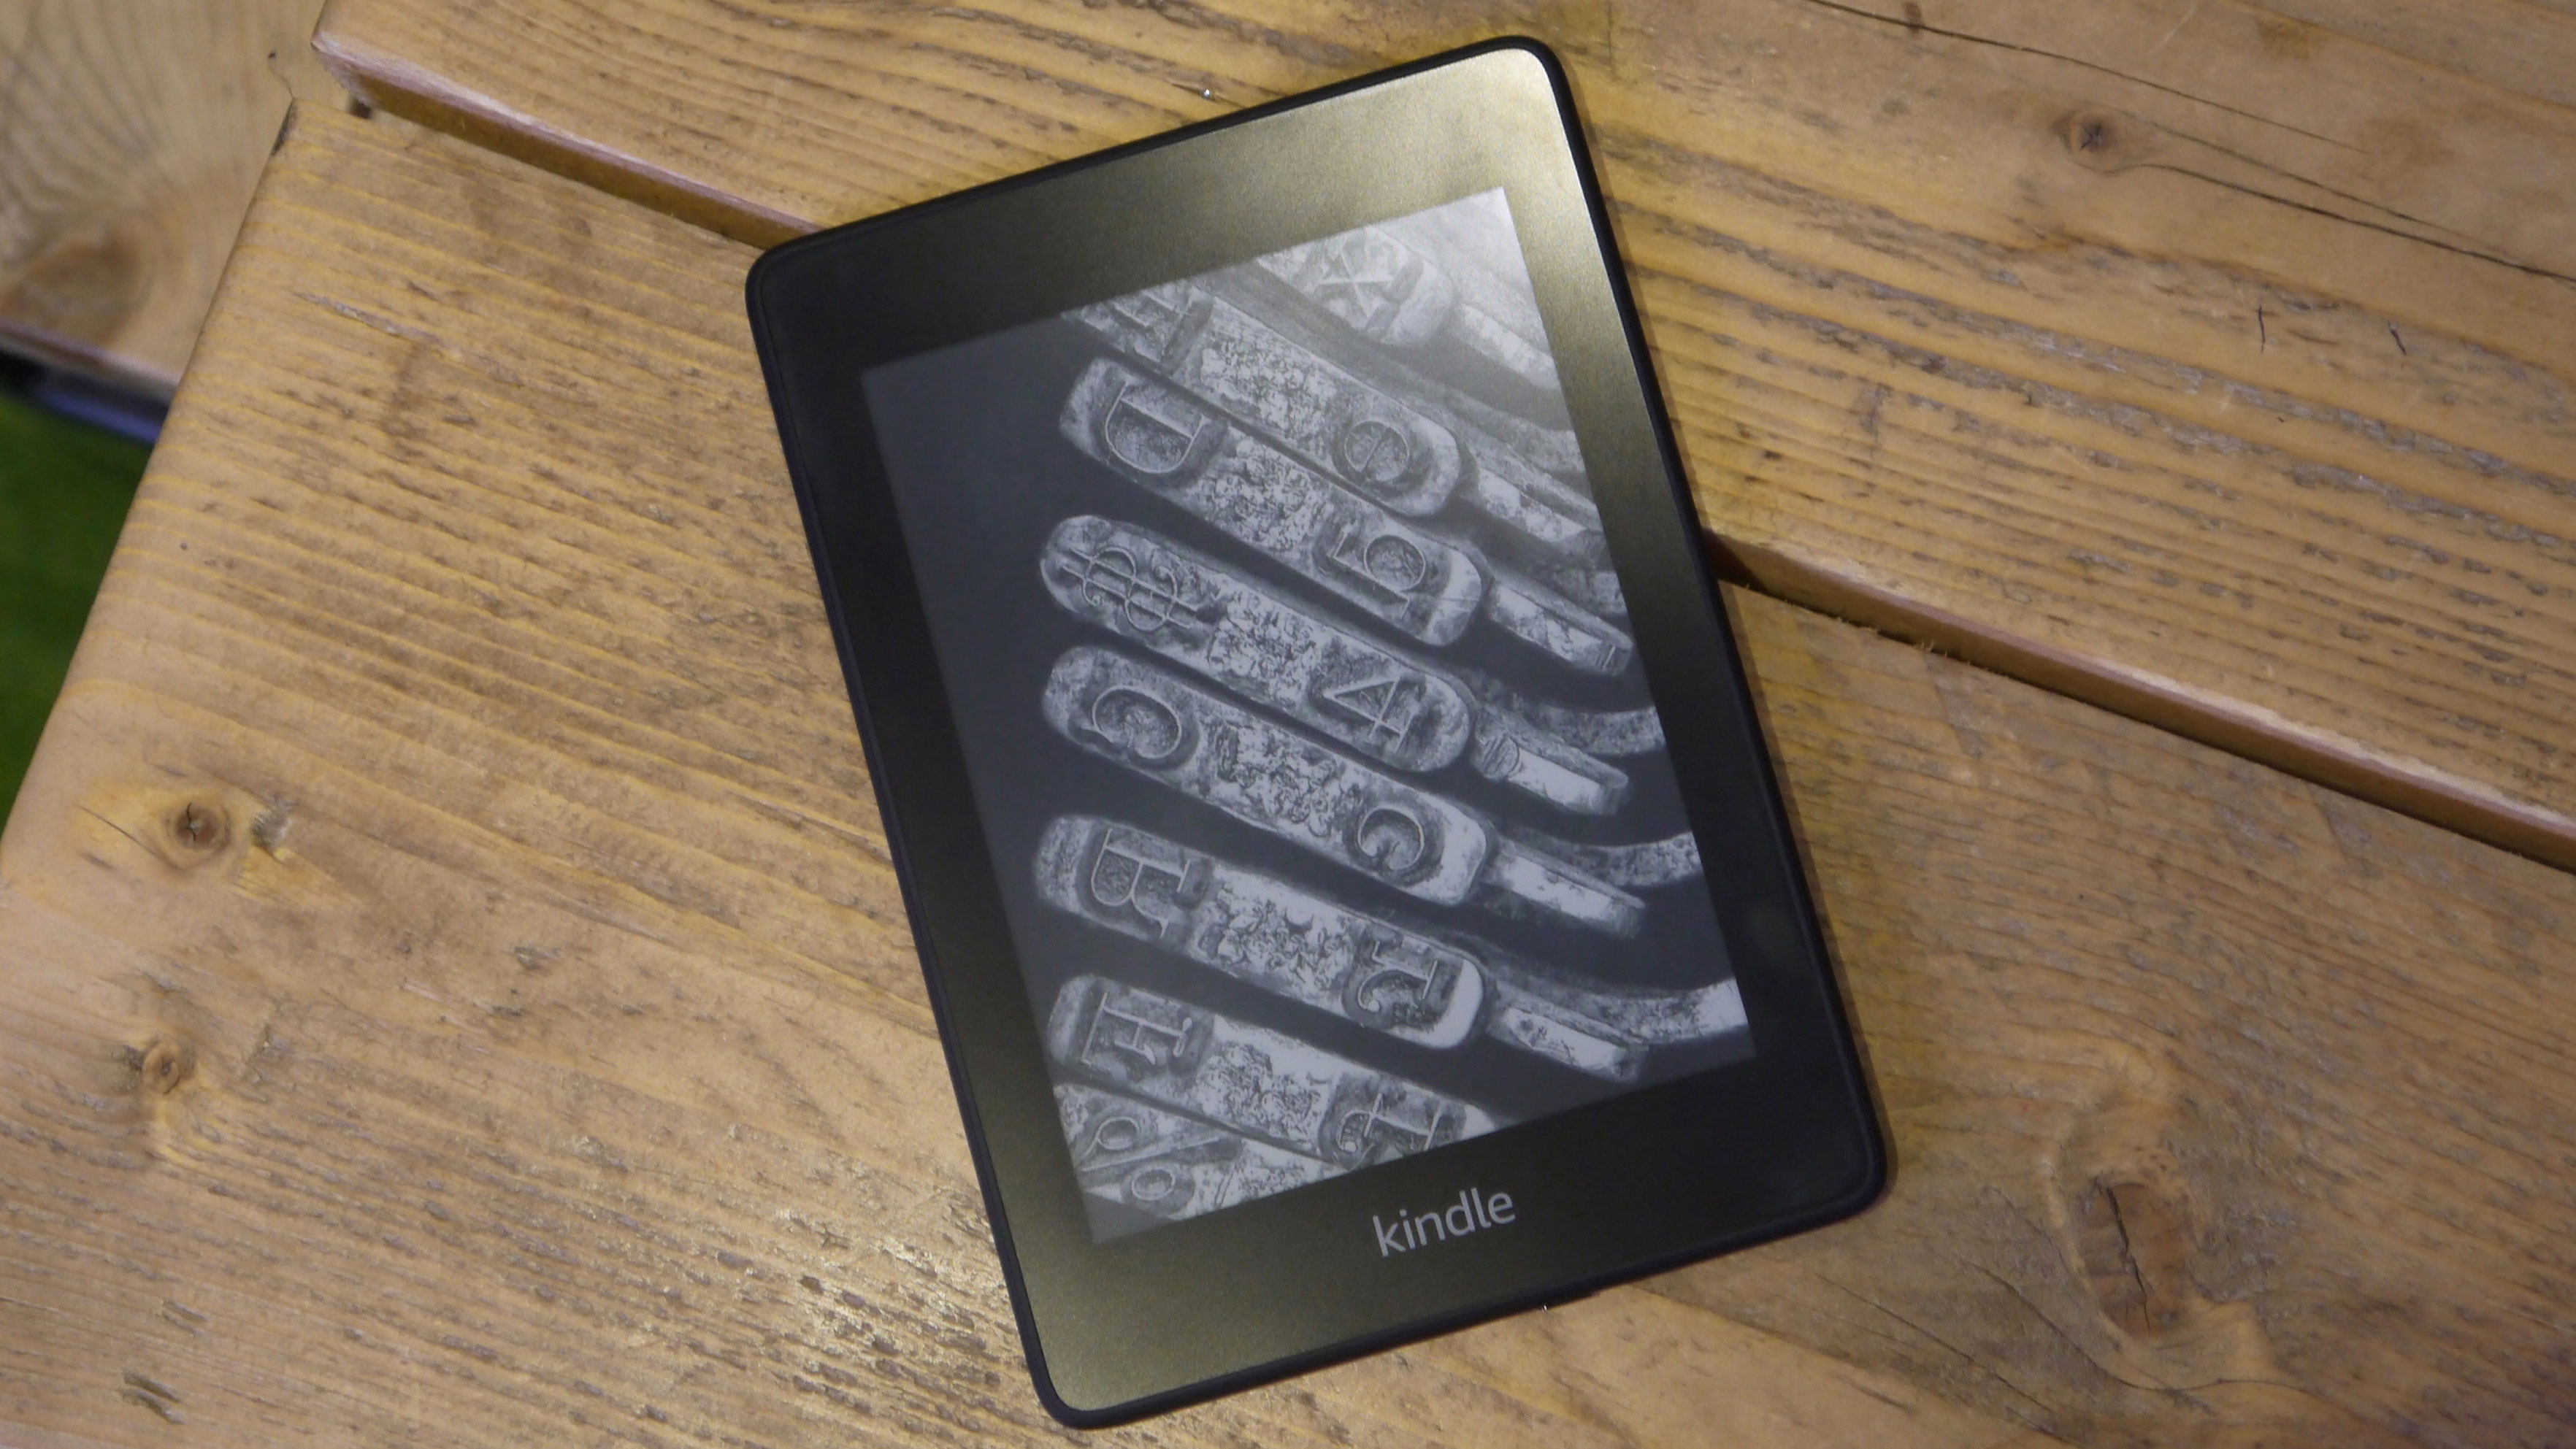 Dear Kindle: Amazon Kindle Paperwhite